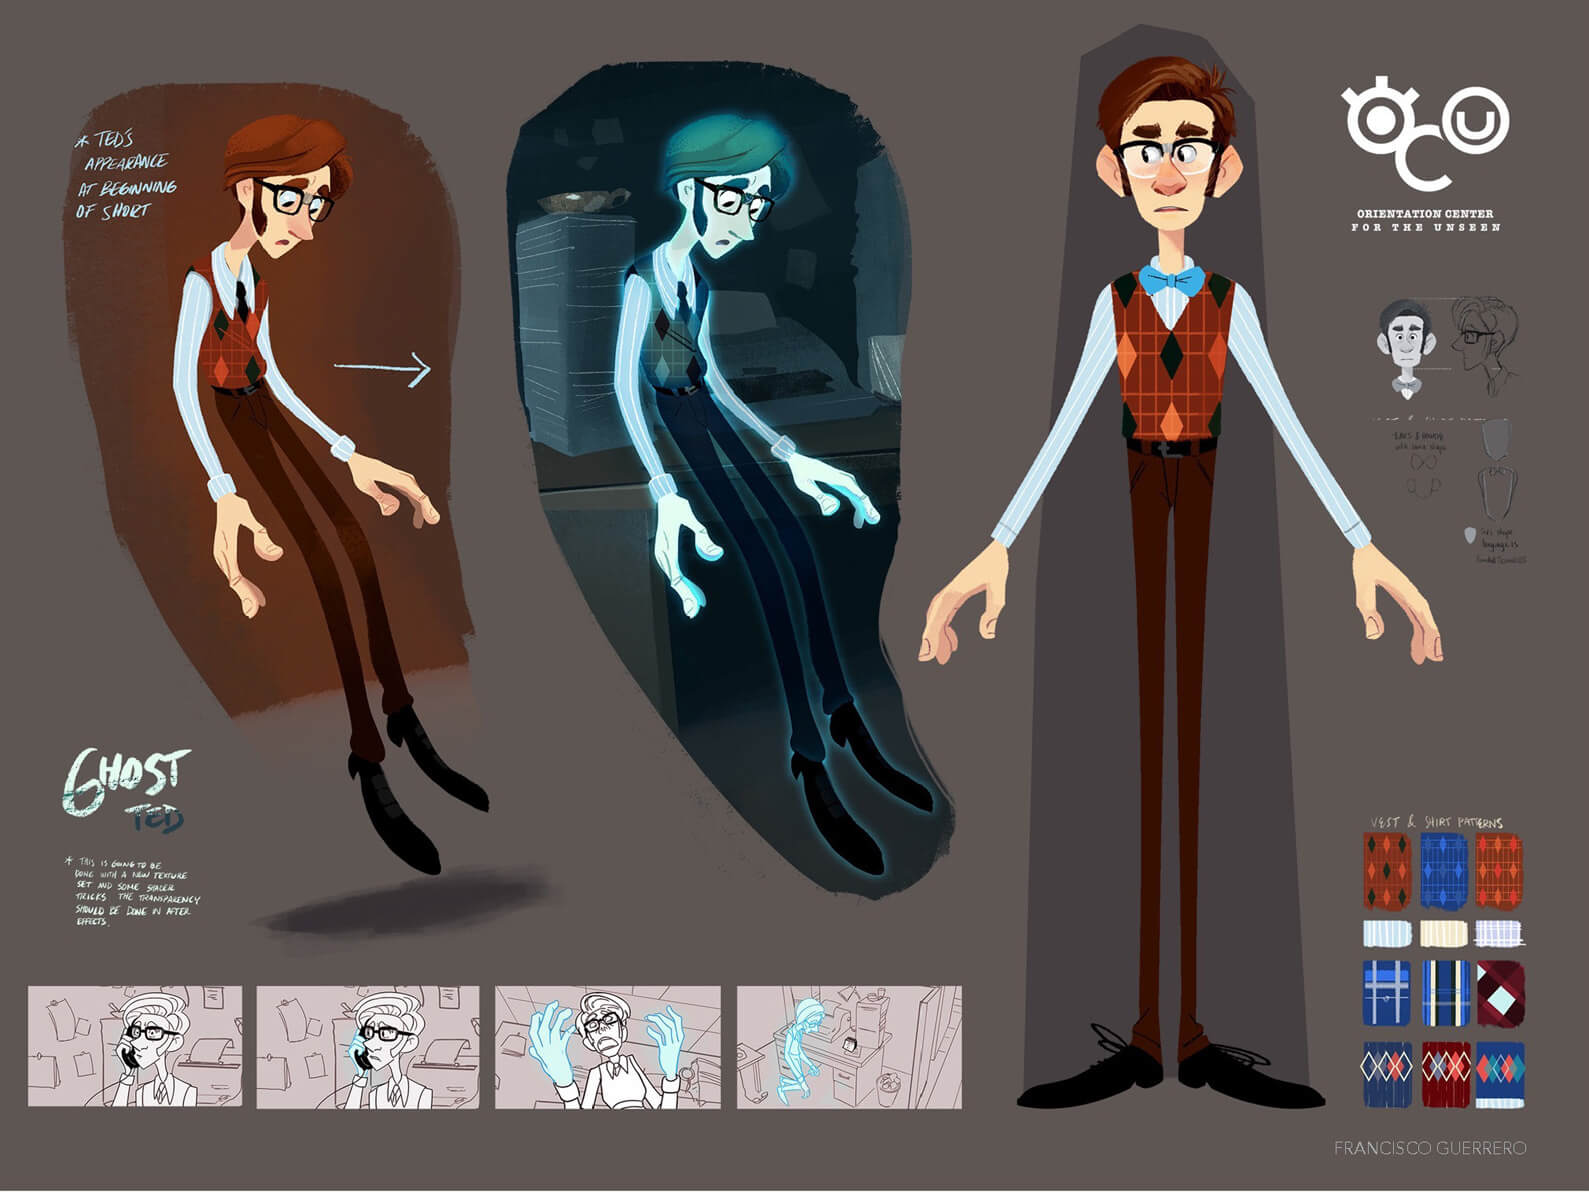 Concept art of Ted from Orientation Center for the Unseen in alive and ghostly forms, including color palette and fashion